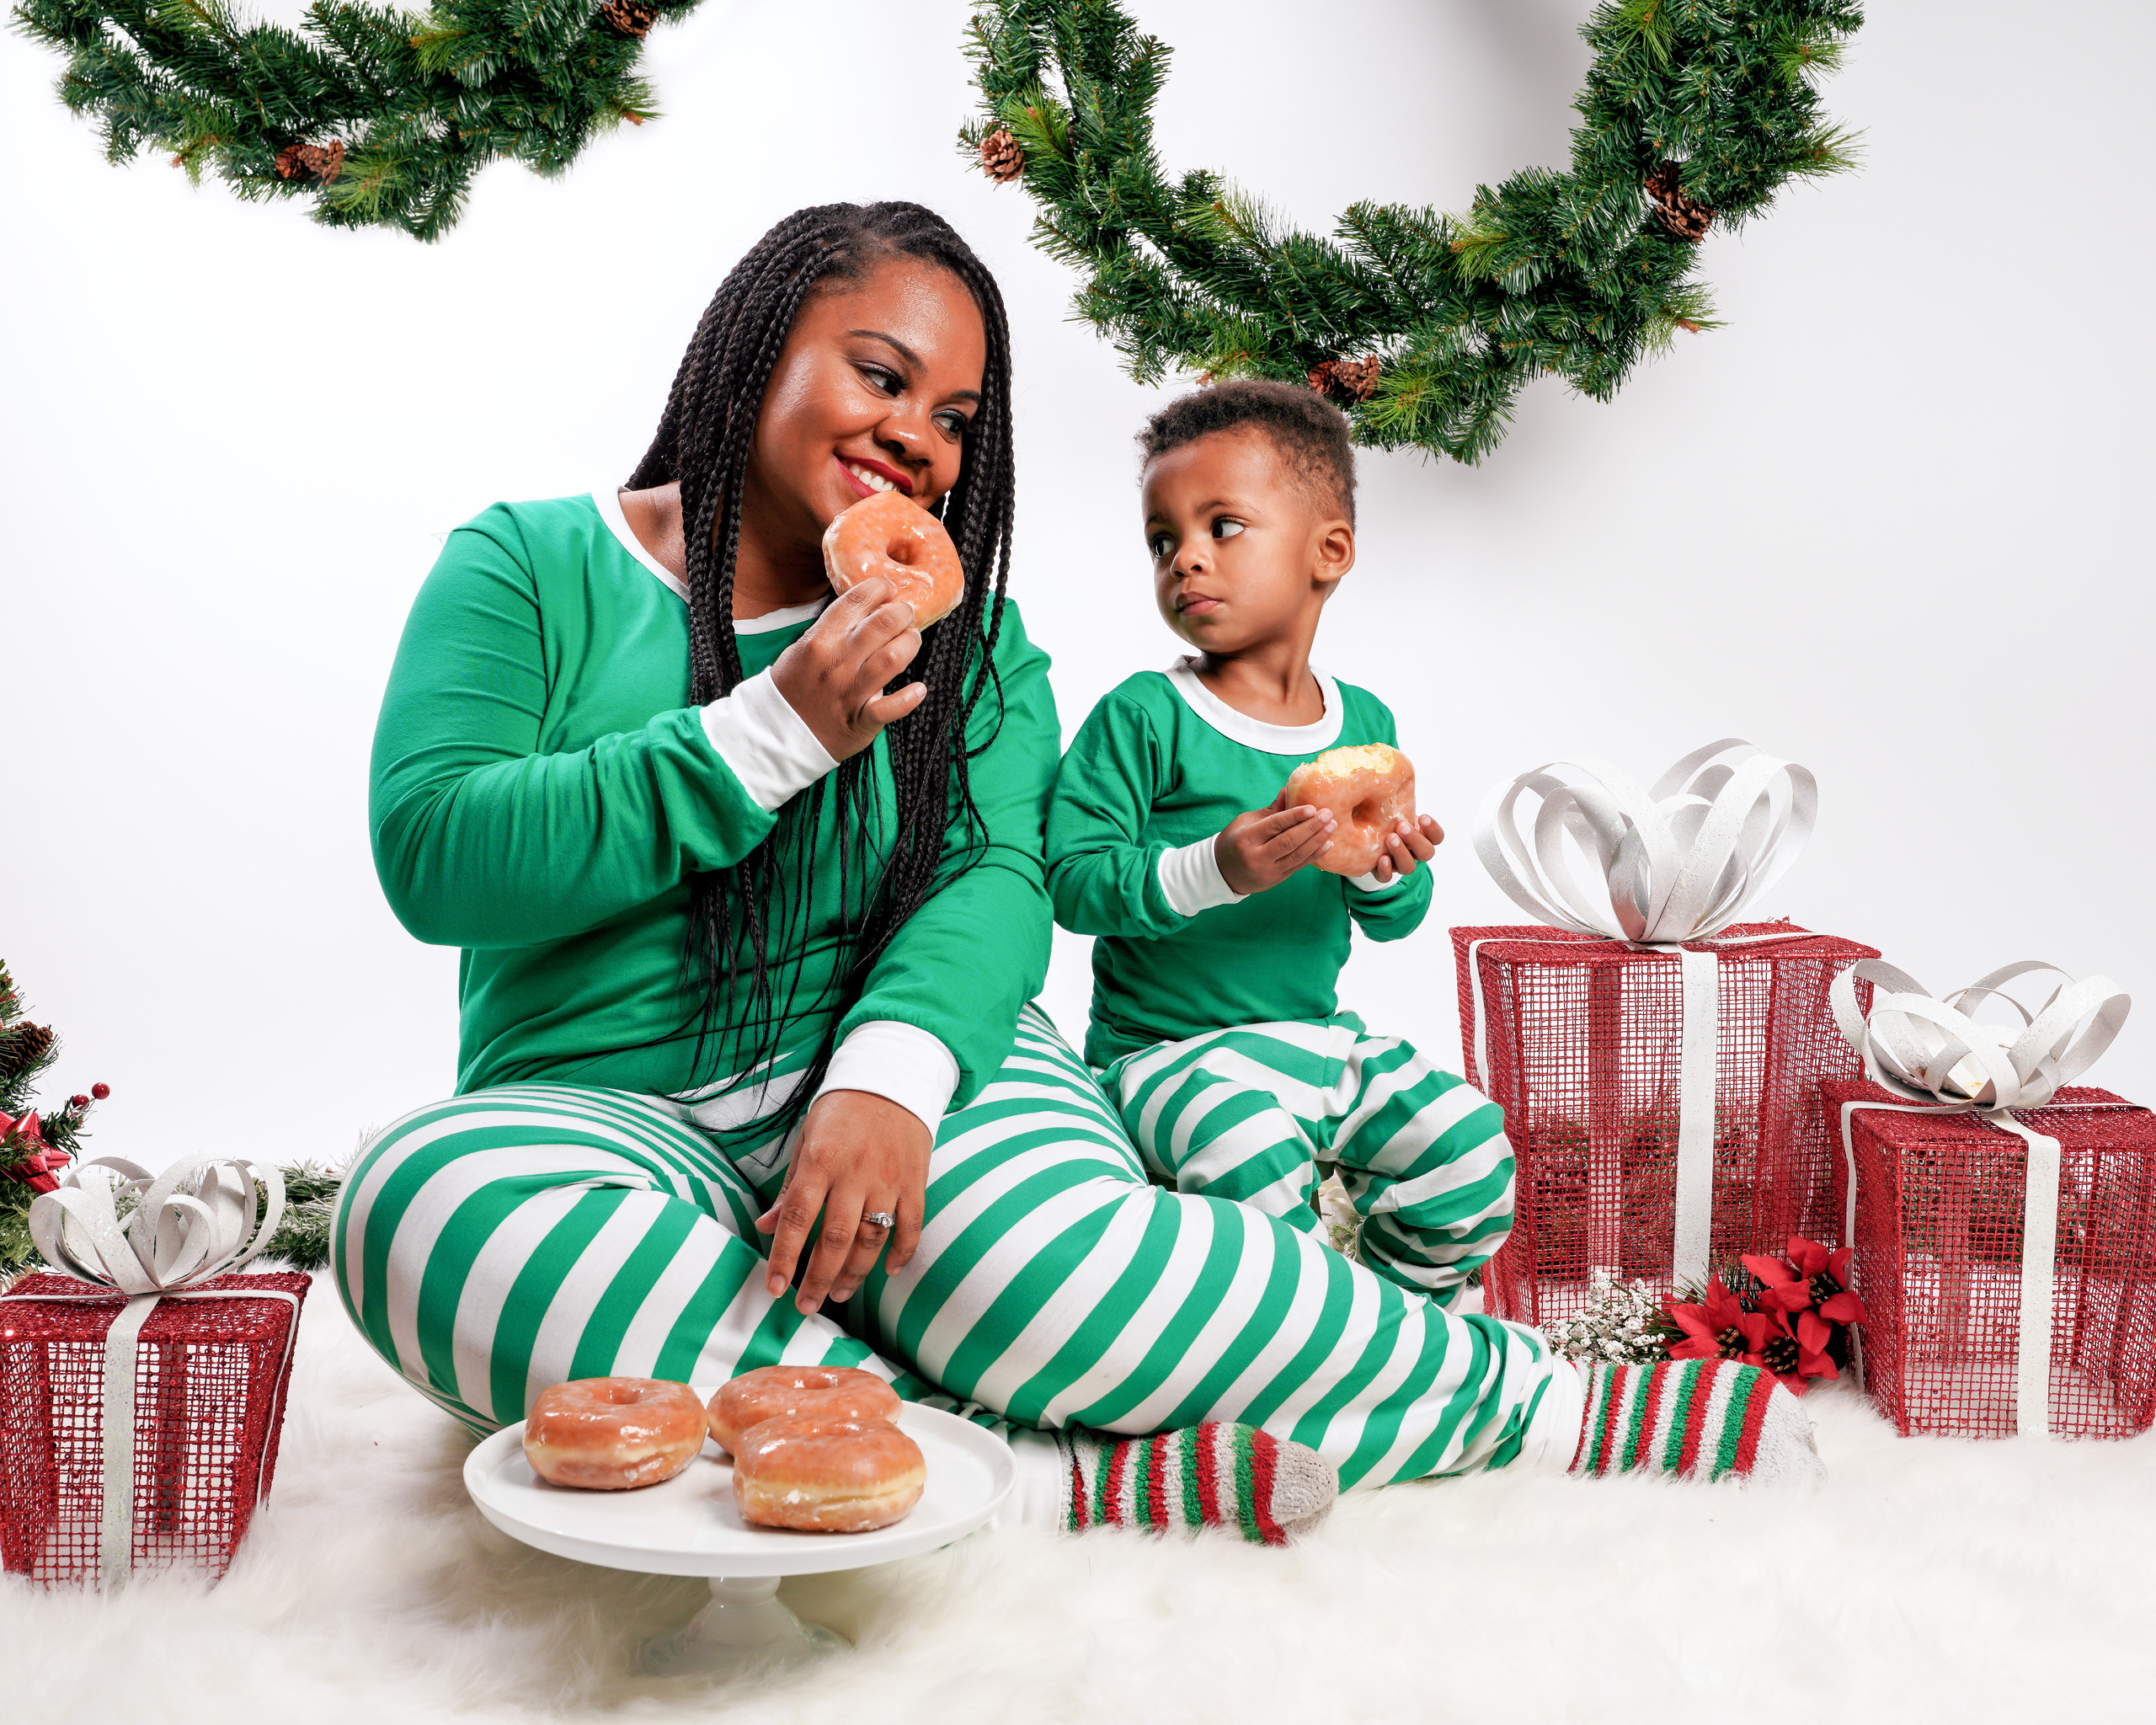 Mommy & Me Christmas Photoshoot - Photography by Tabb